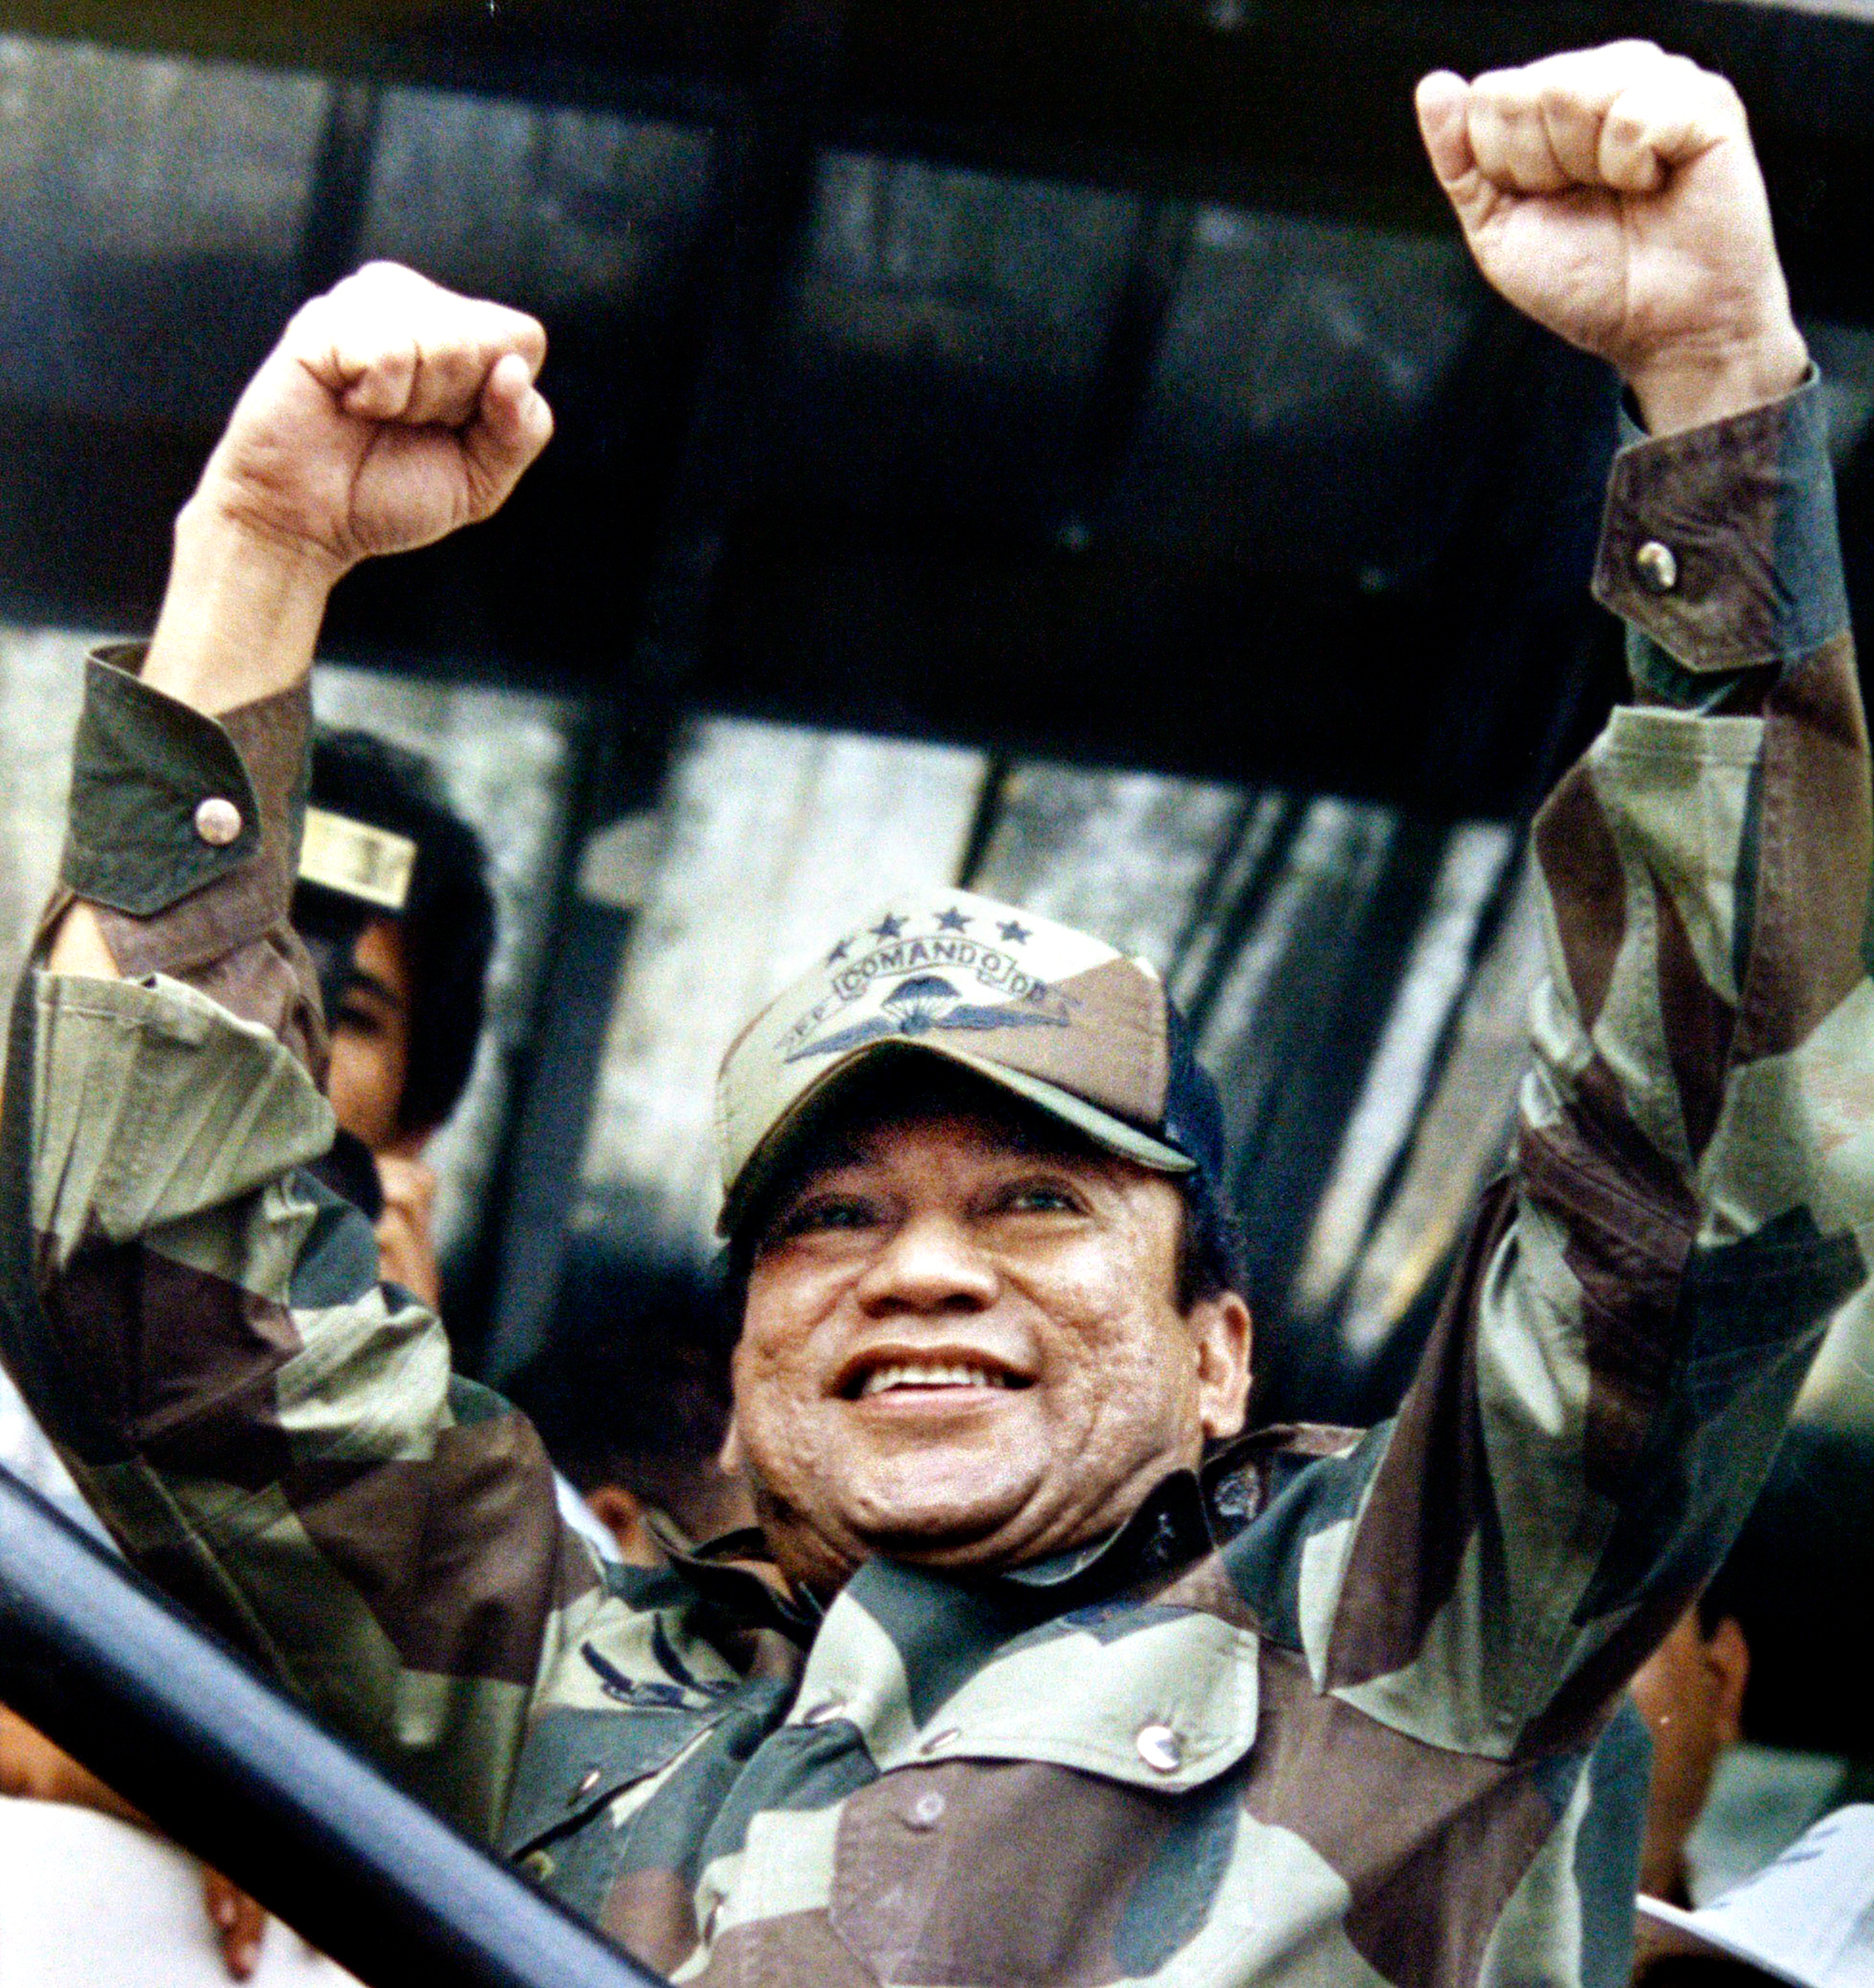 Noriega ruled Panama with an iron fist from 1983 until he was ousted by a U.S. invasion in 1989